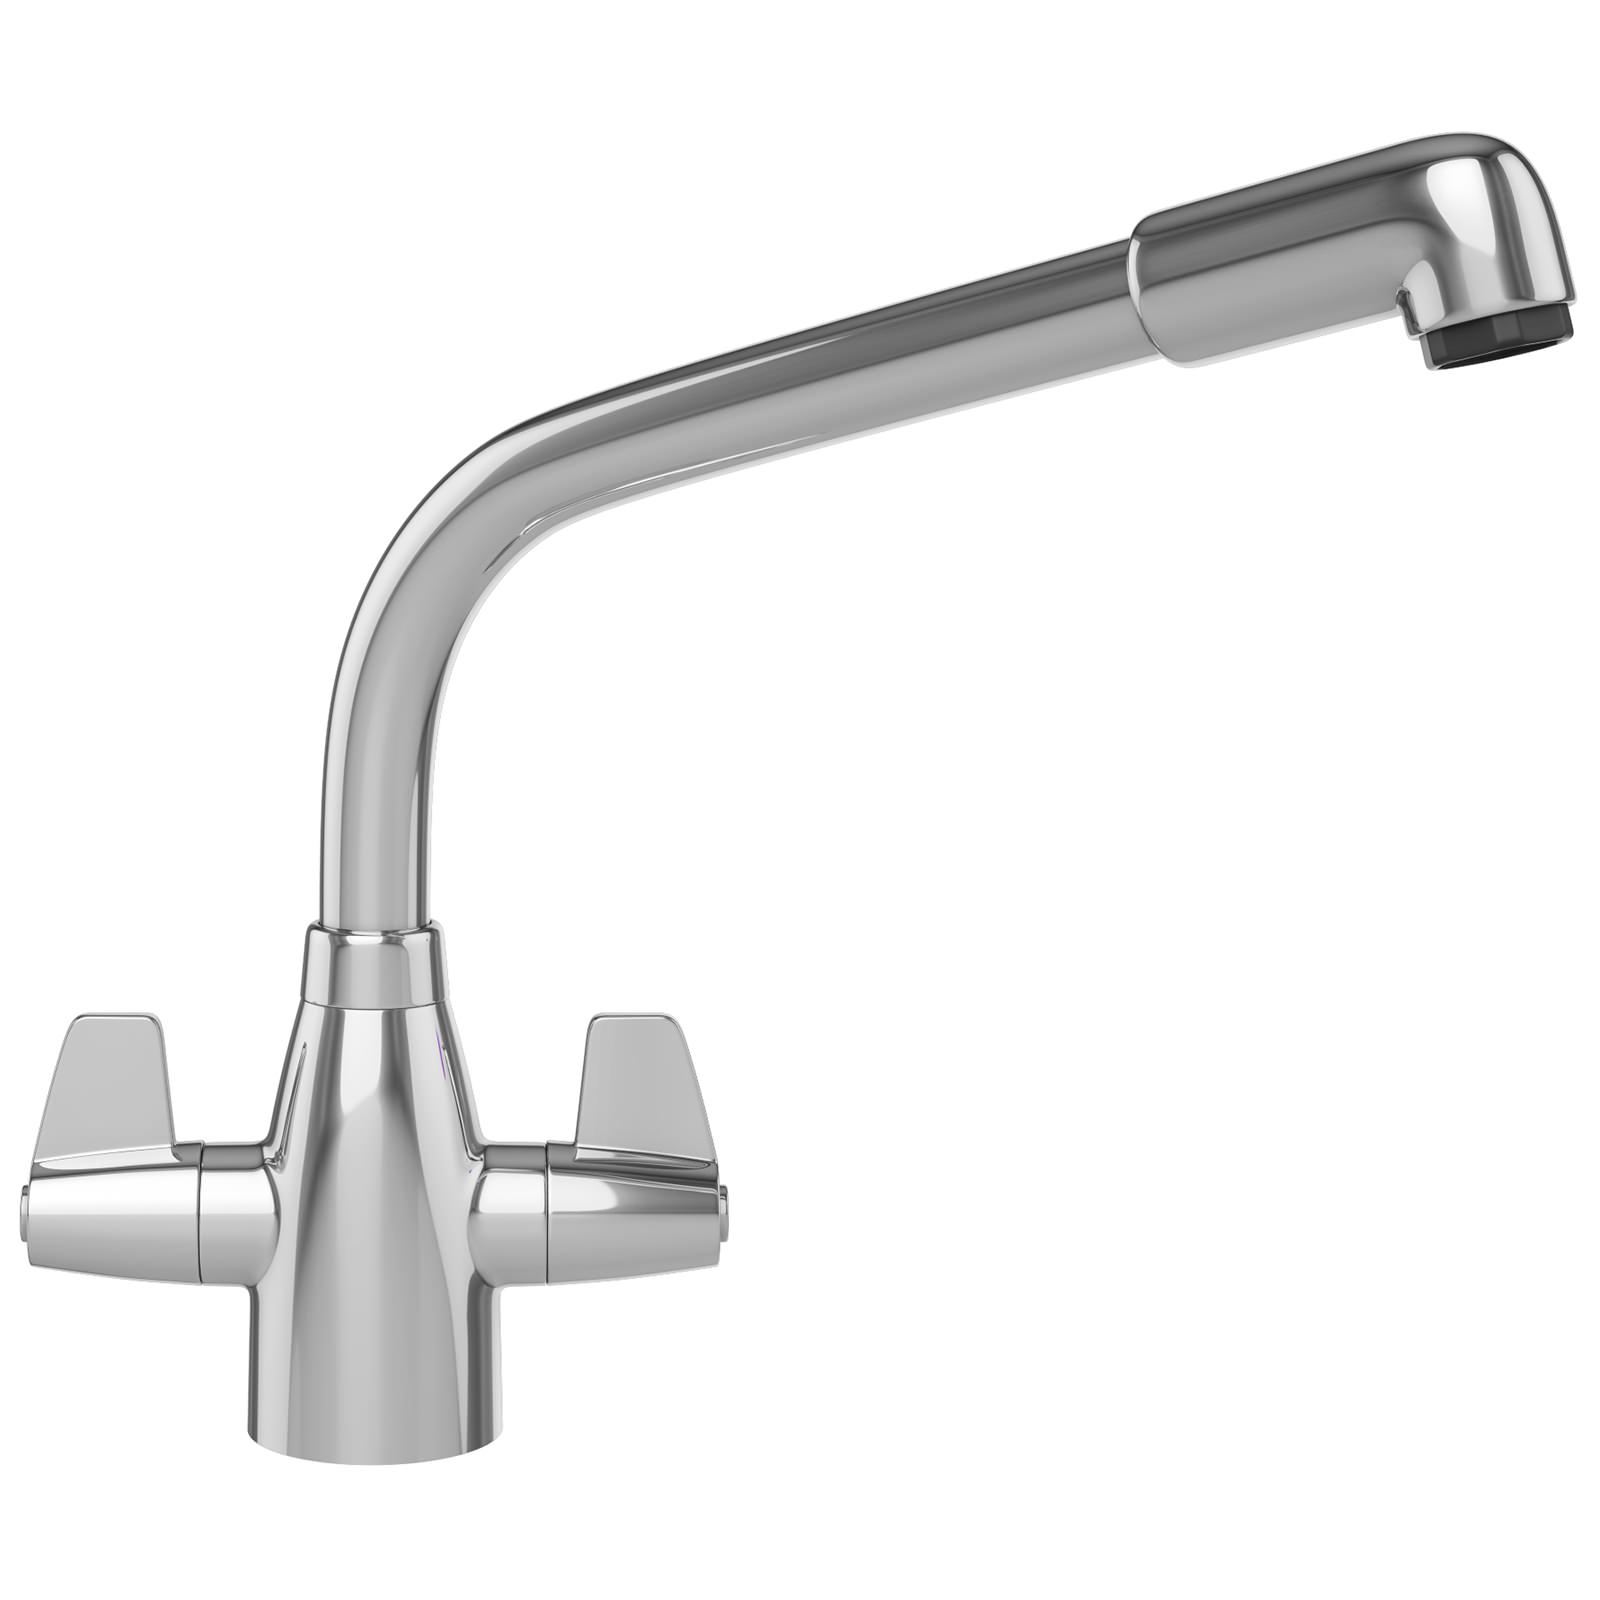 franke davos kitchen sink mixer tap chrome - Kitchen Sink Mixer Taps